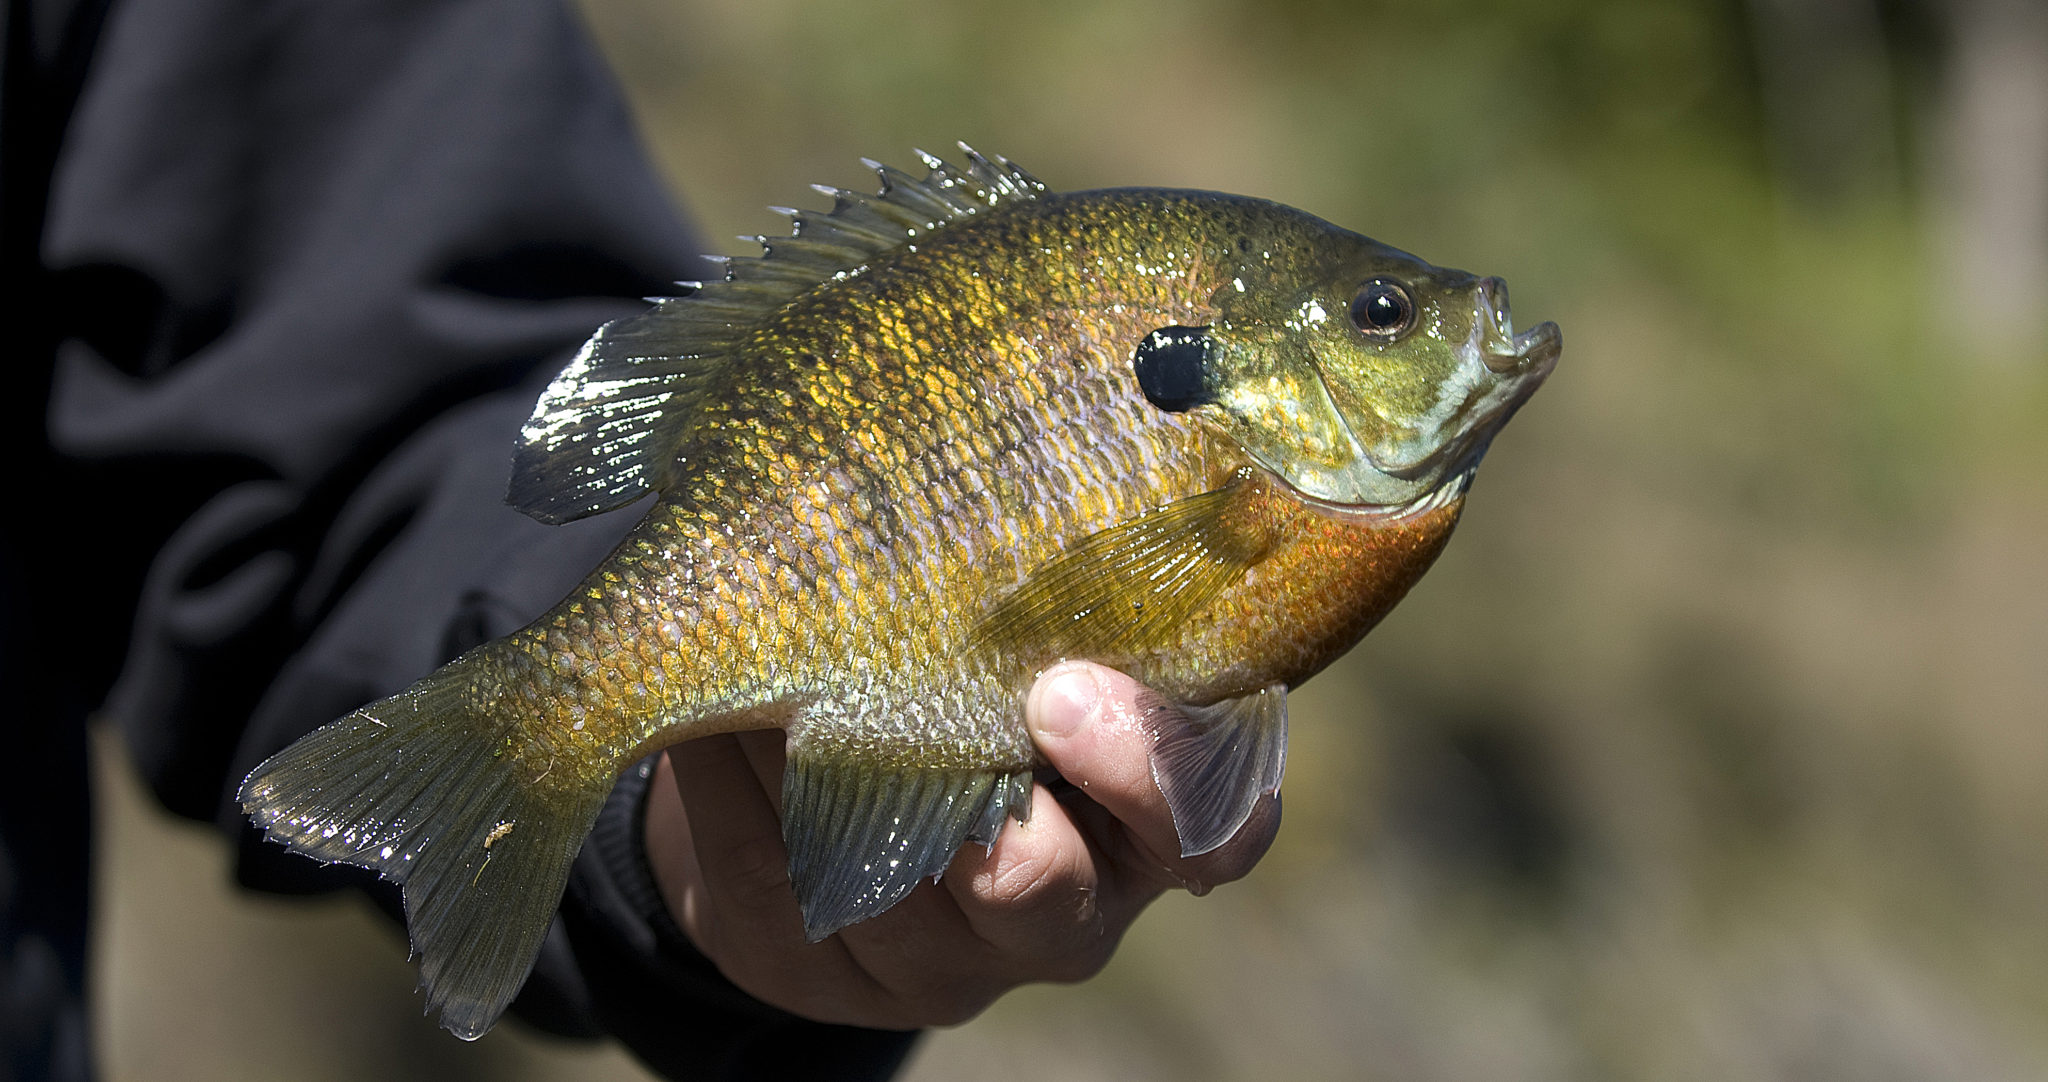 panfish - a man holding a sunfish